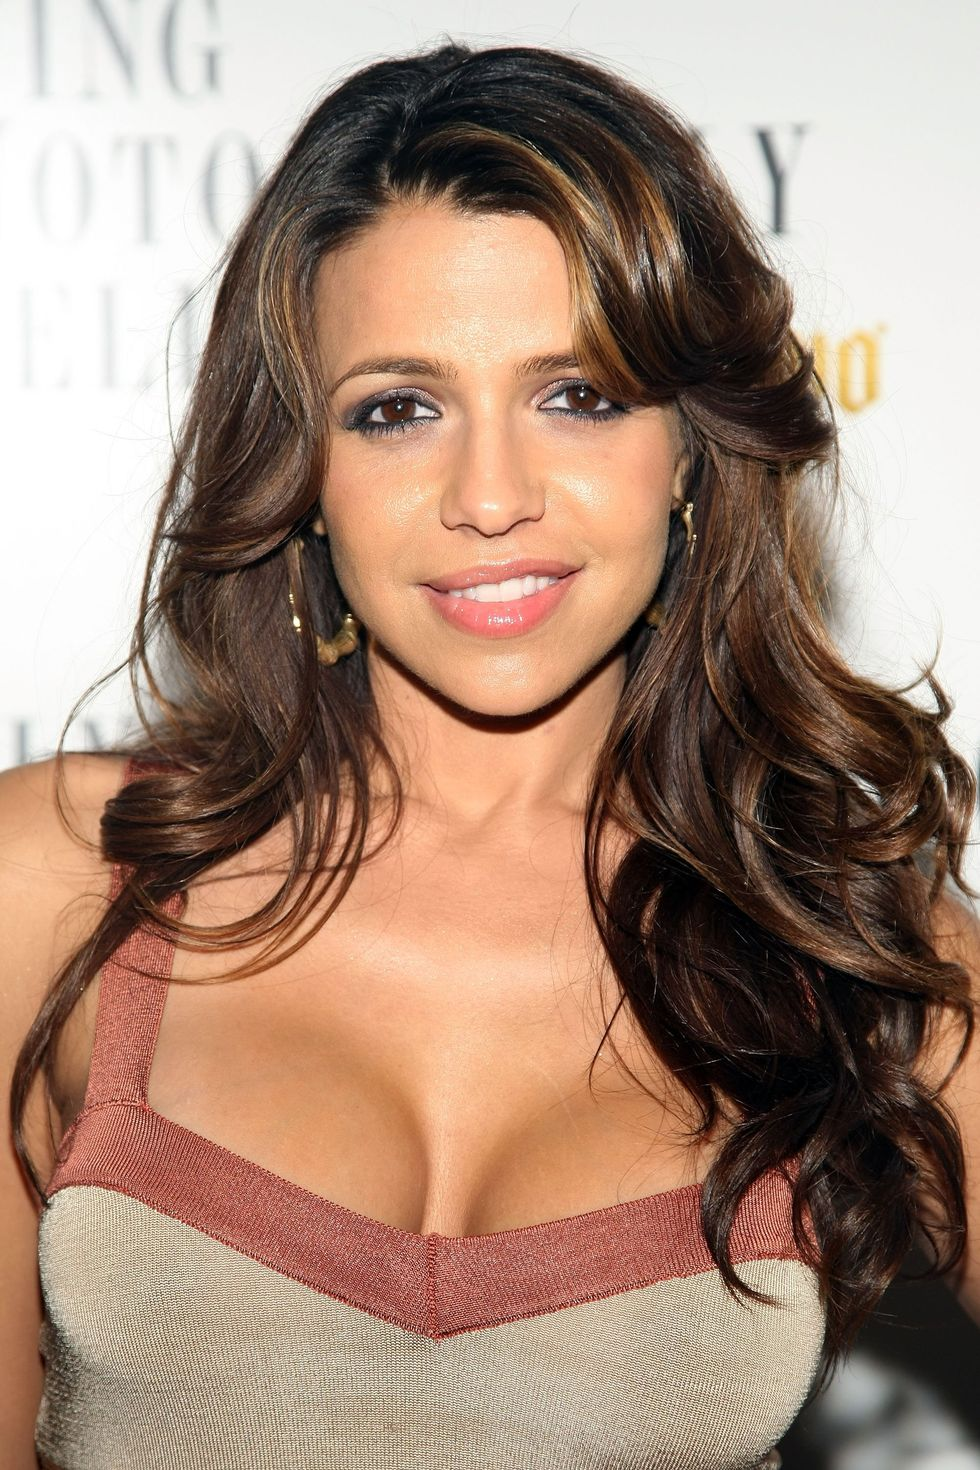 vida-guerra-living-notoriously-well-with-jose-cuervo-super-bowl-celebration-in-los-angeles-01